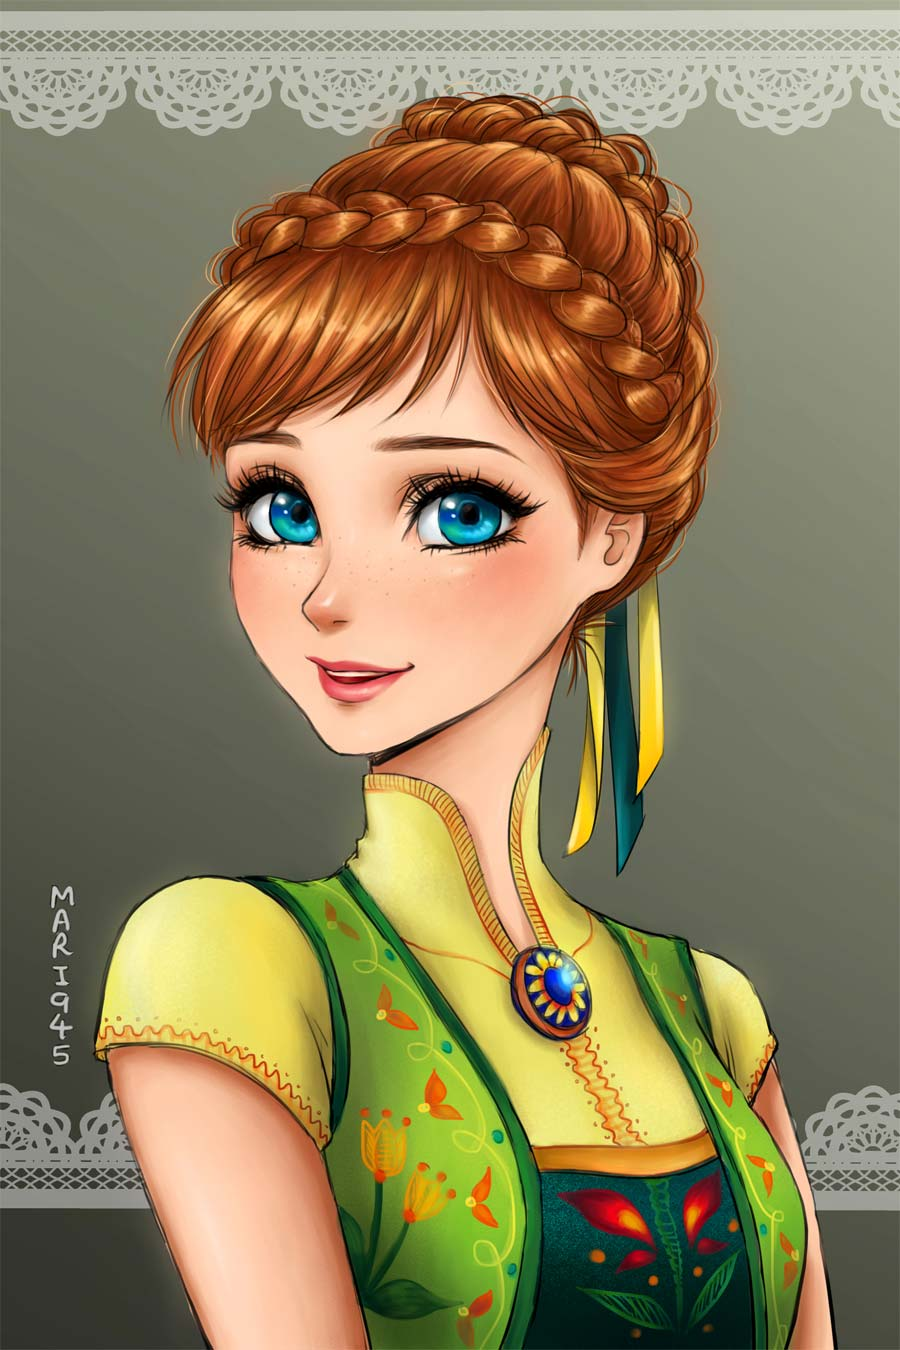 disney-ilustracao-princesas-retratos-animes-013